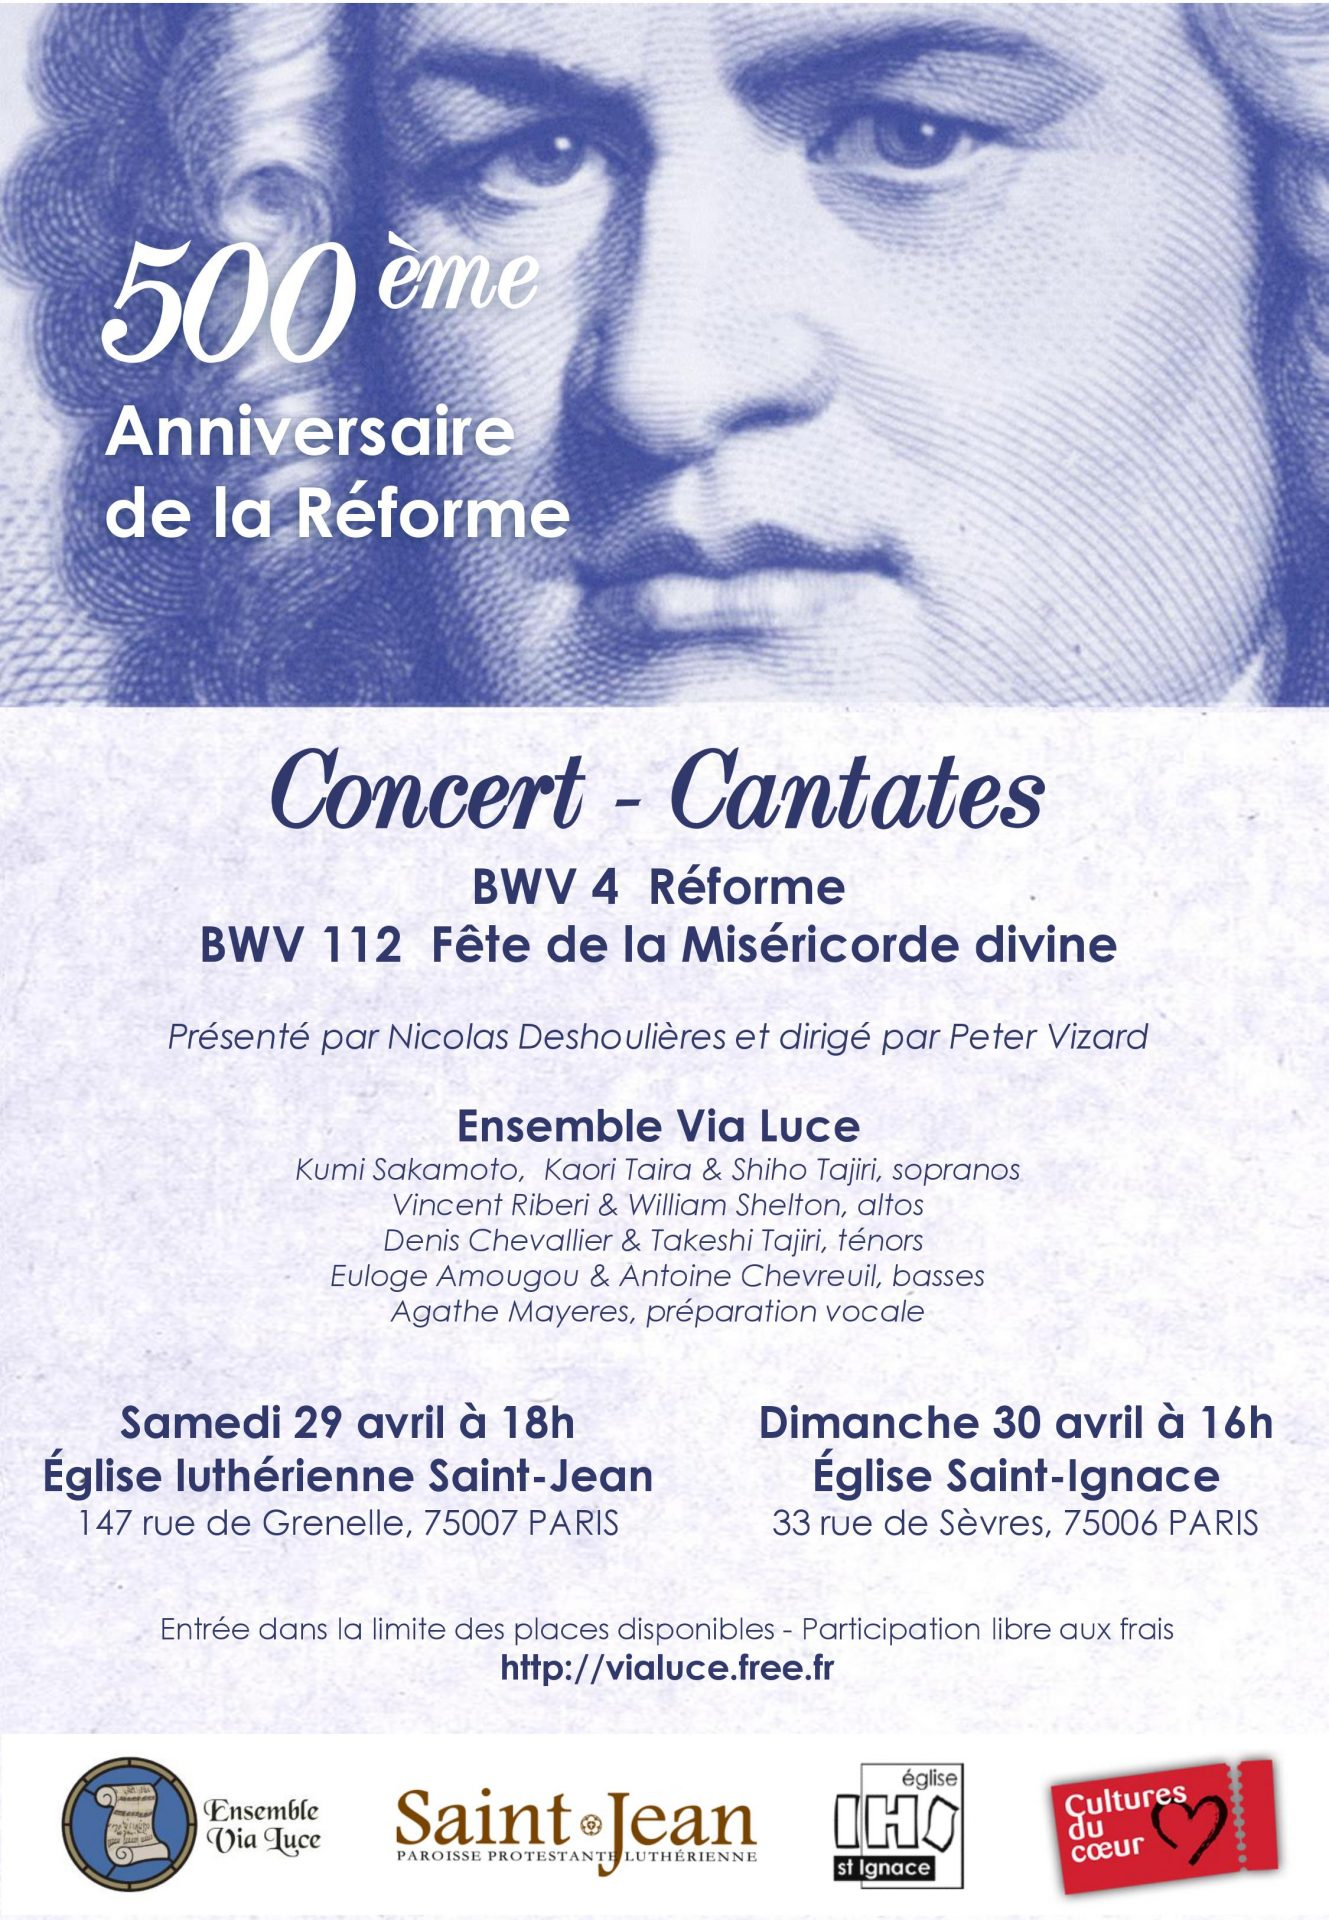 Concert Via Luce Saint-Jean 29 avril 2017